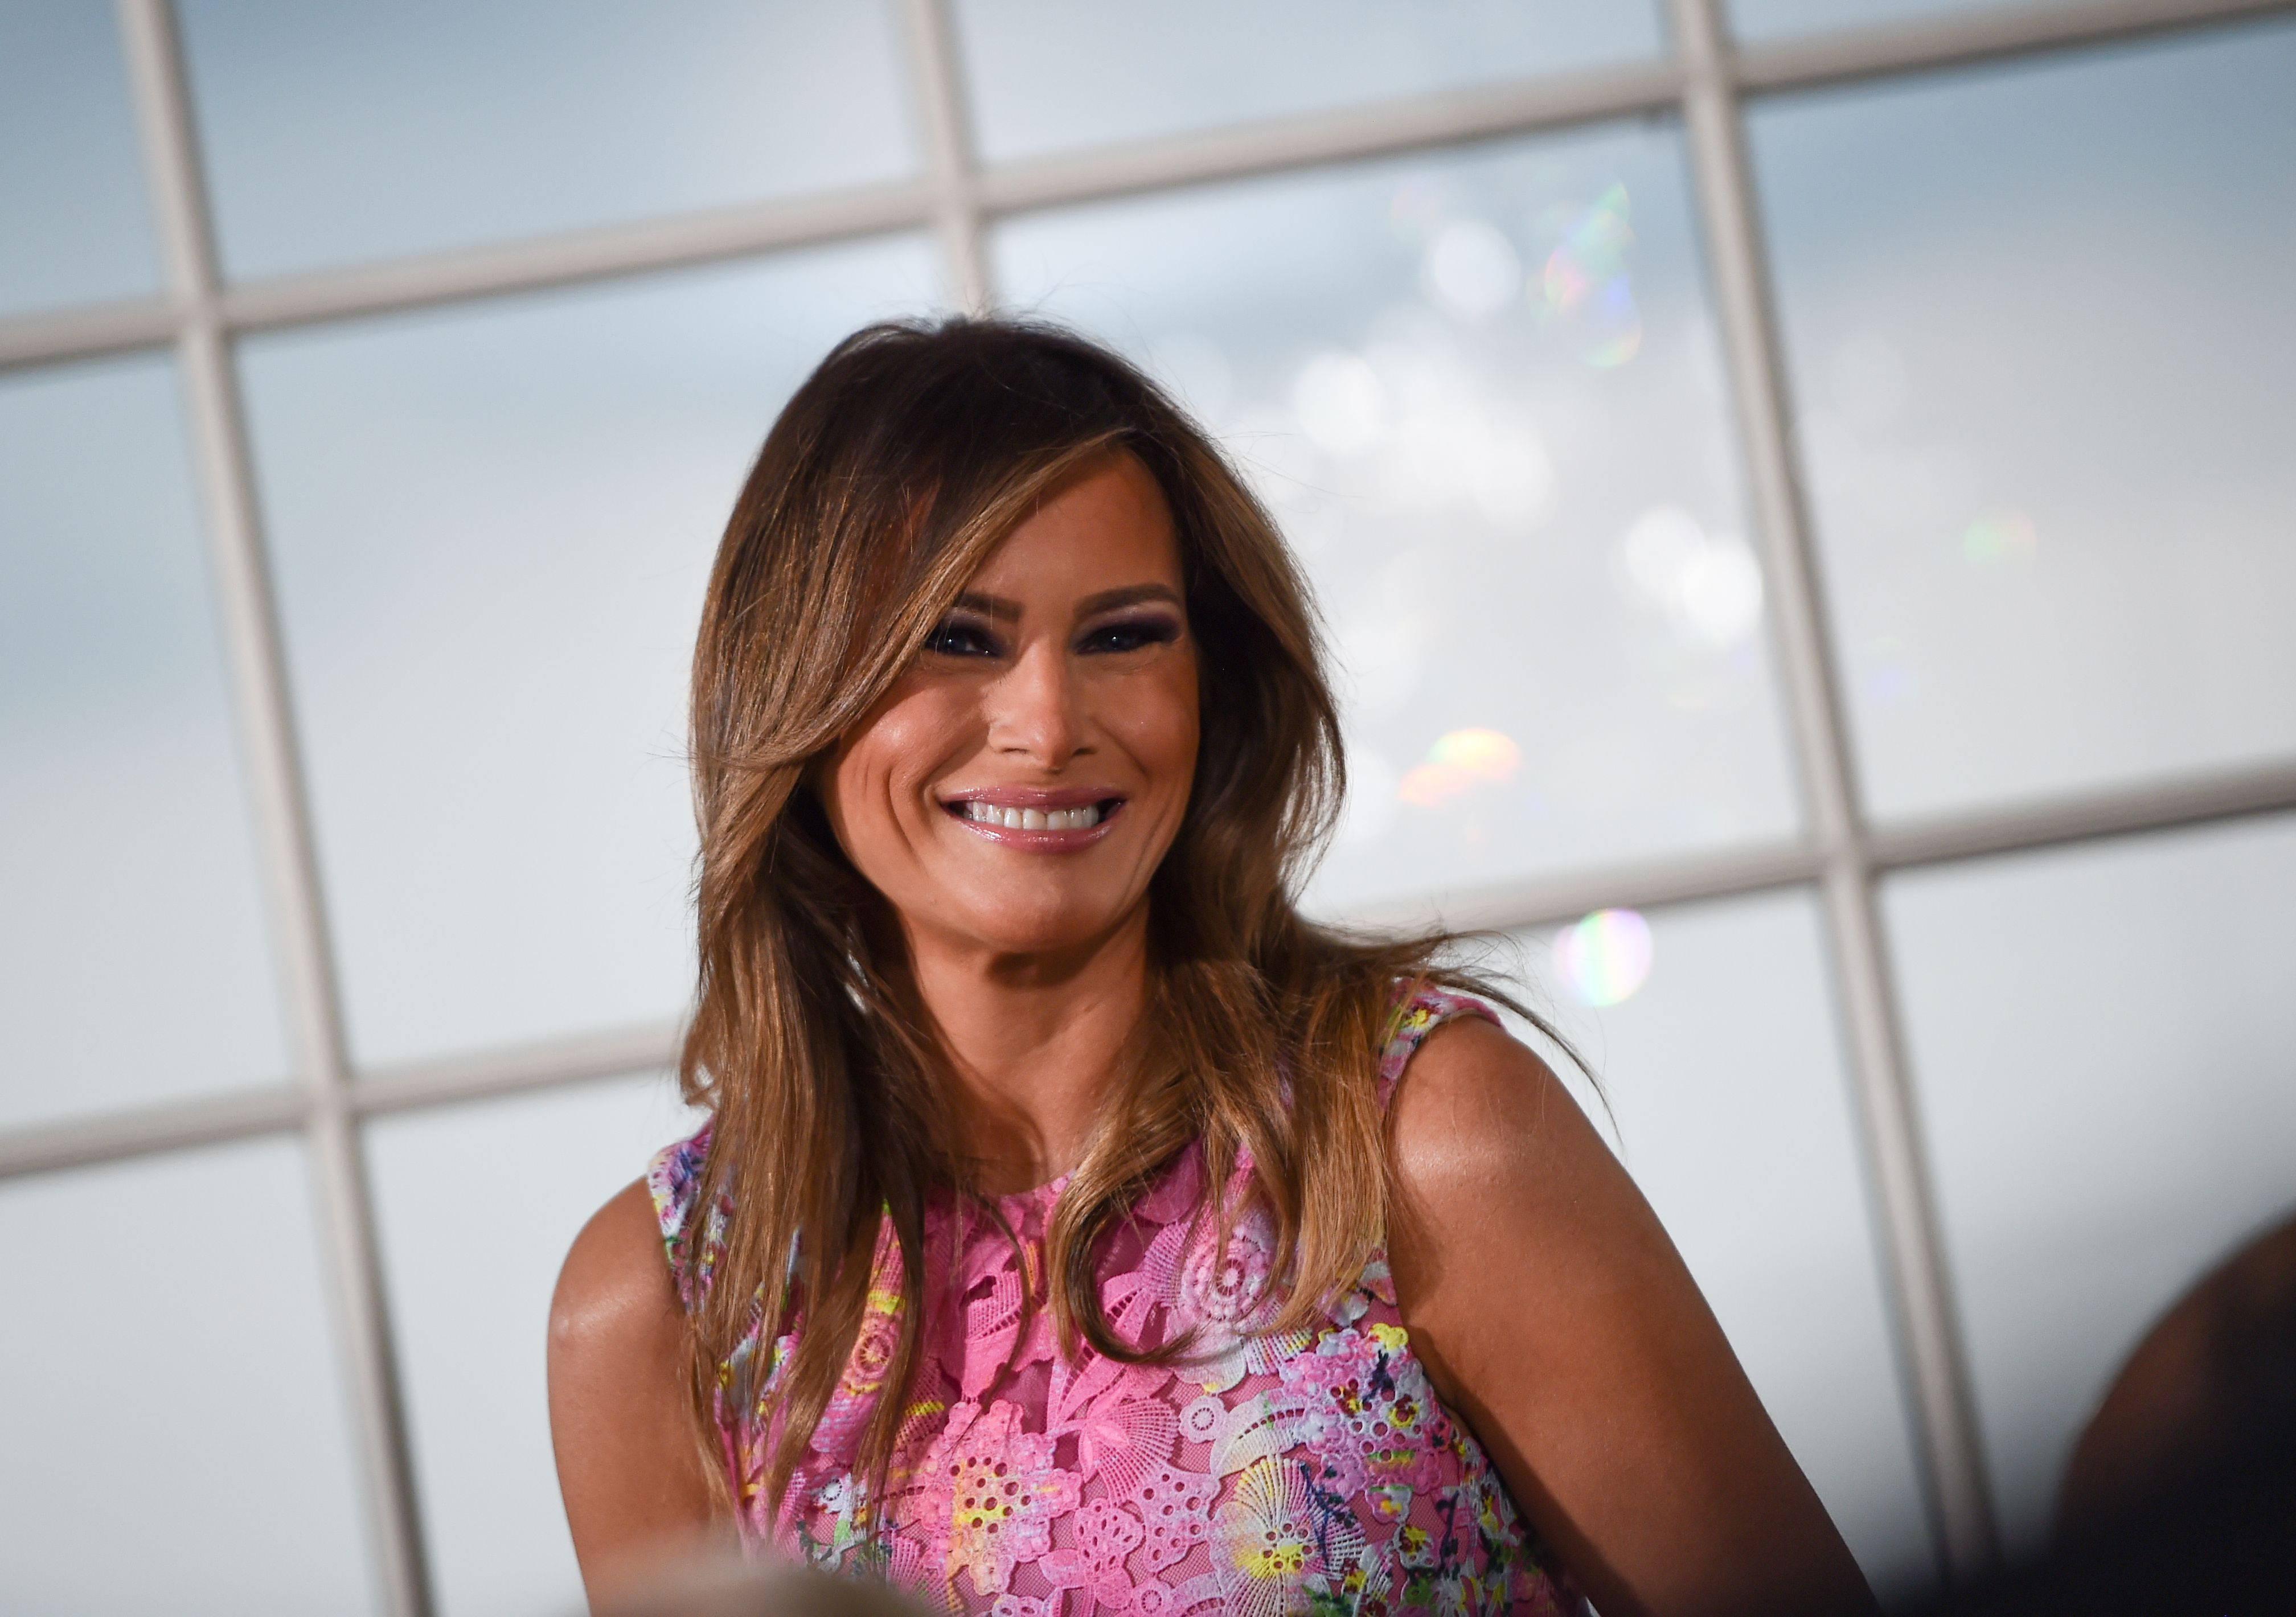 Melania Trump Praises Apple For 'Big Innovations & Investments In The USA'